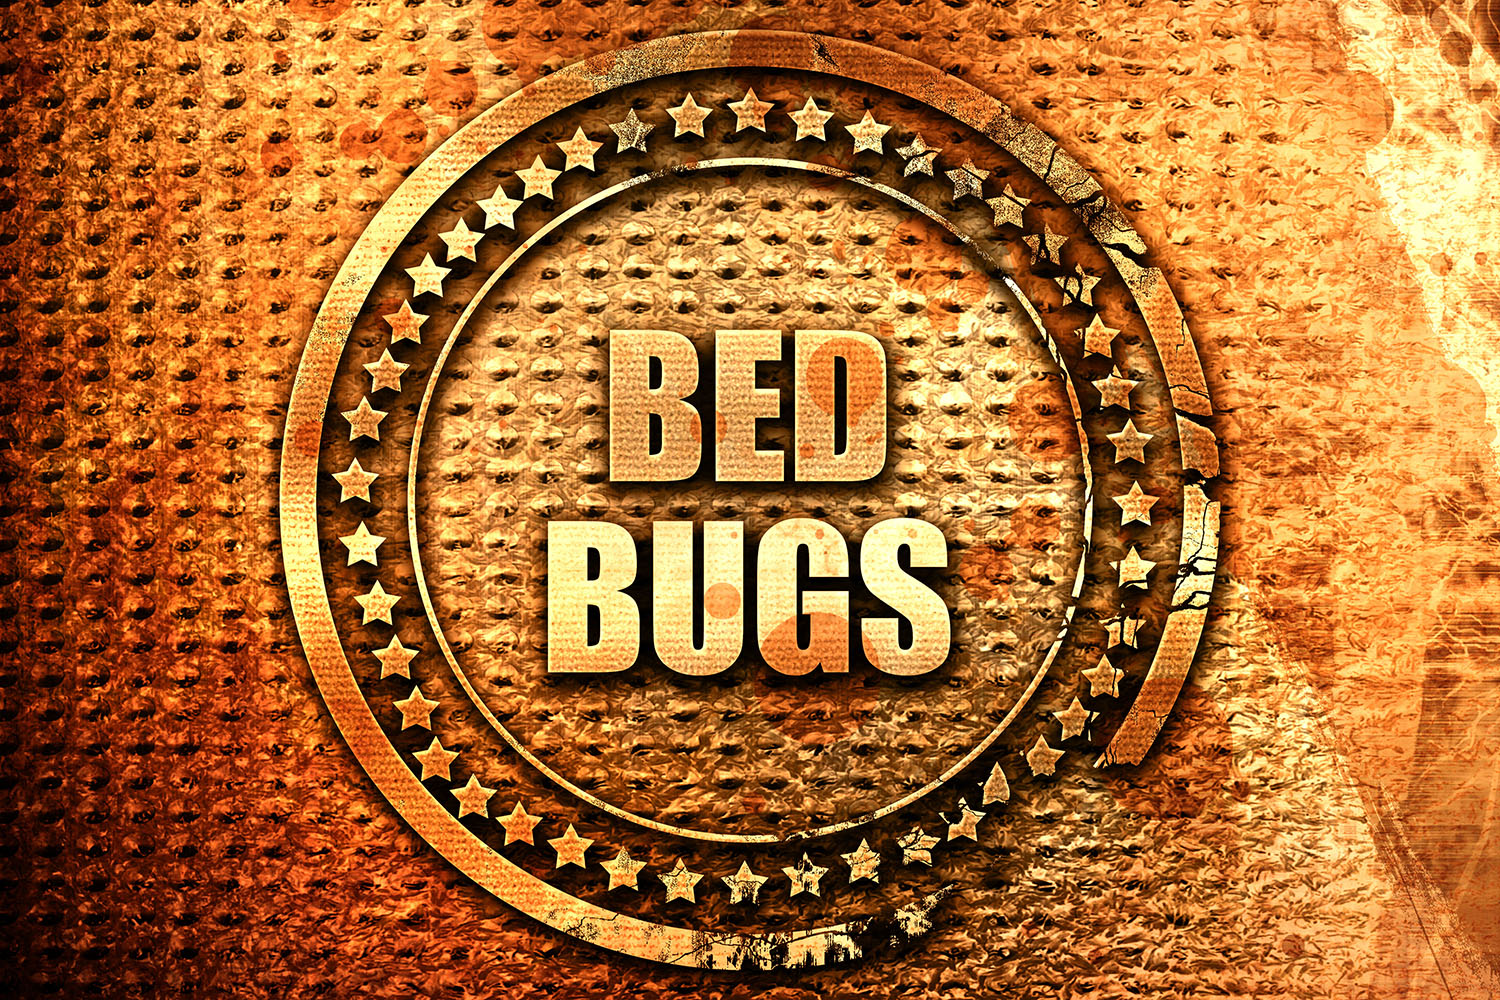 Bed Bugs - Treatment